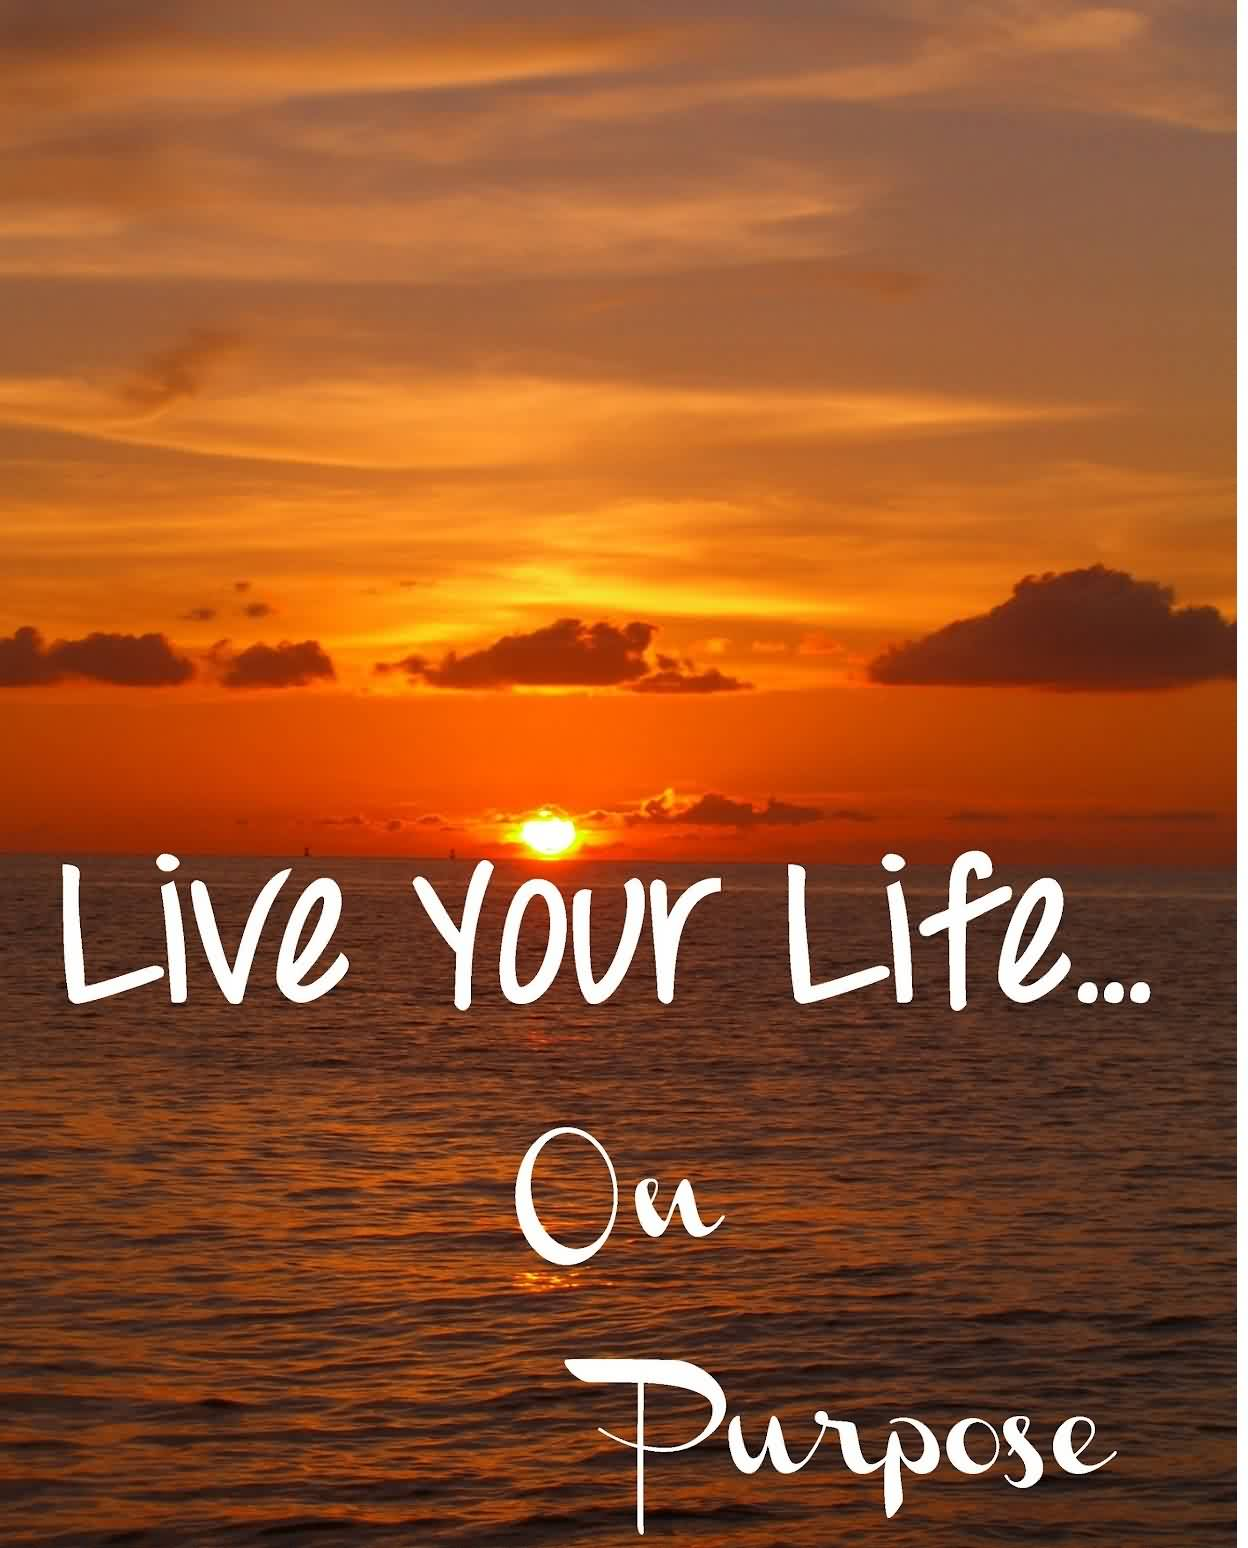 Great Quotes About Living Life: Famous Life Quotes Purpose. QuotesGram